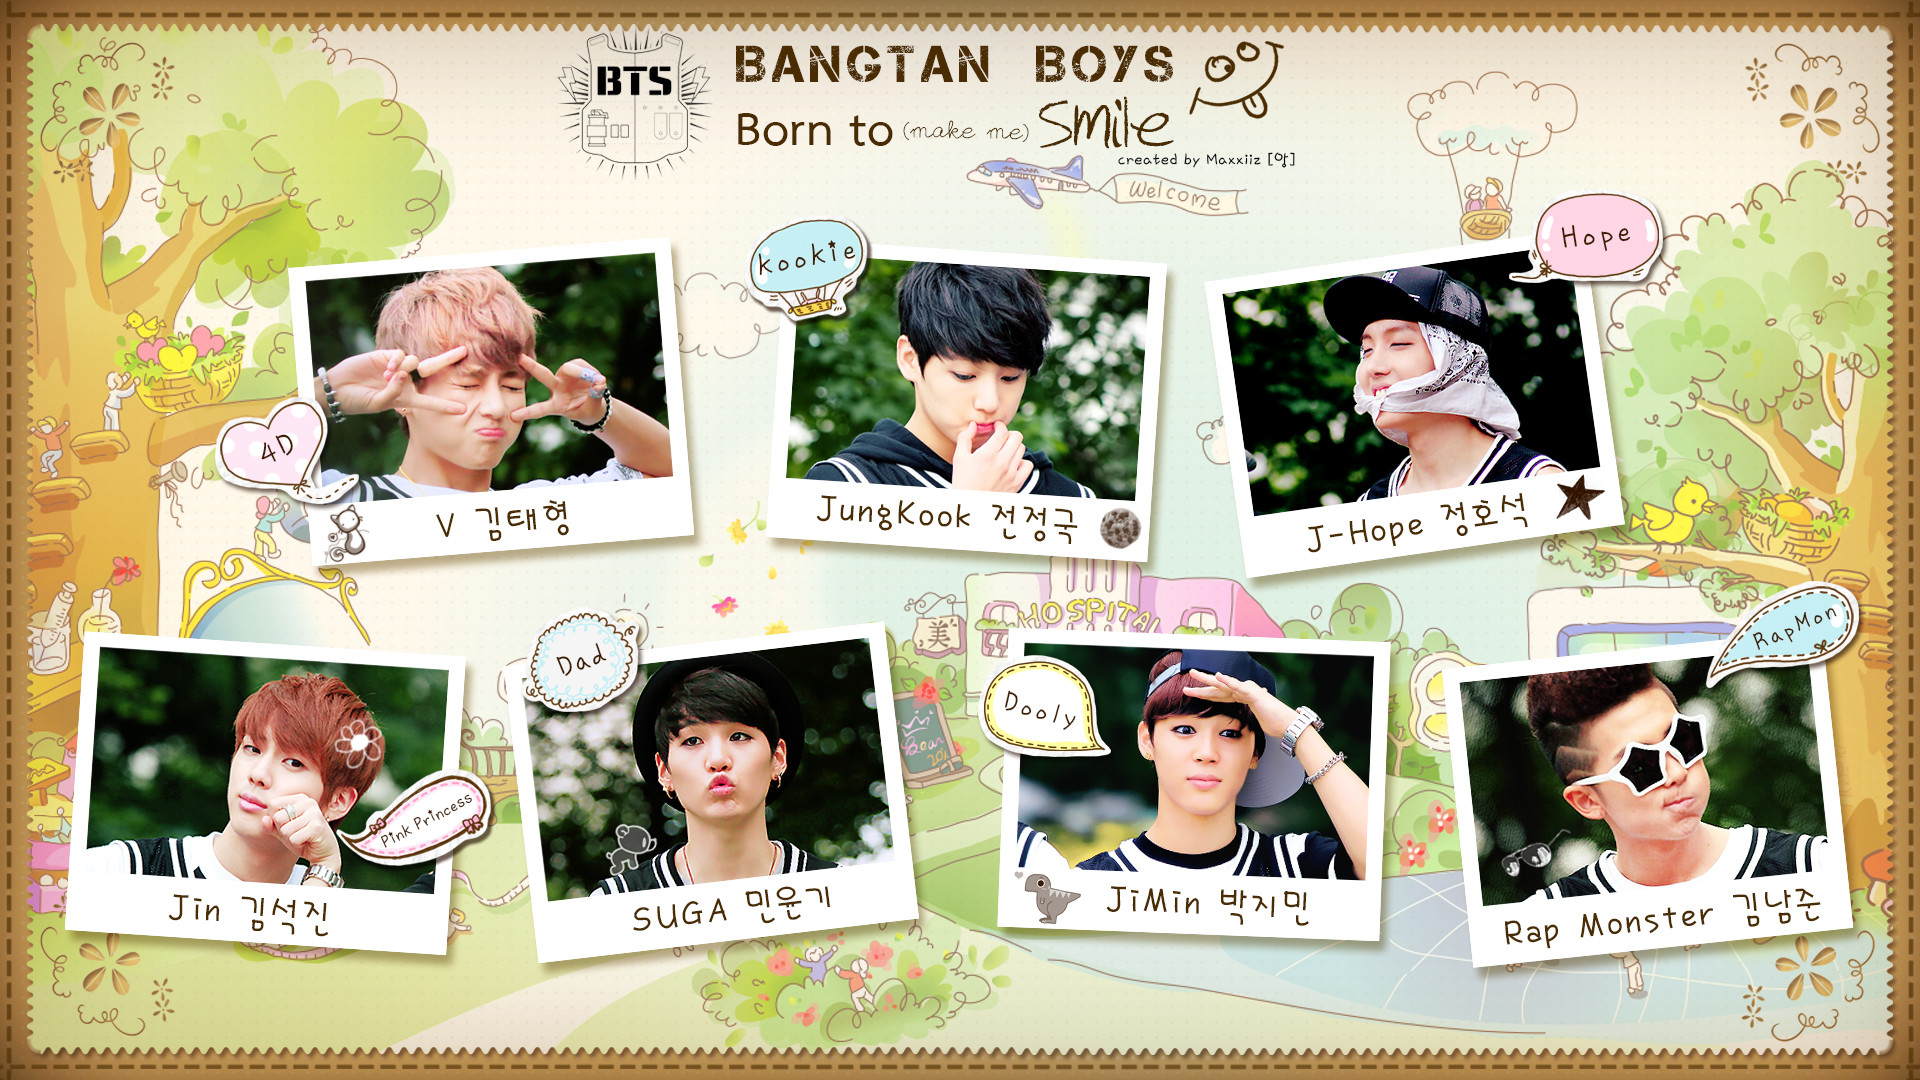 bts hd desktop images